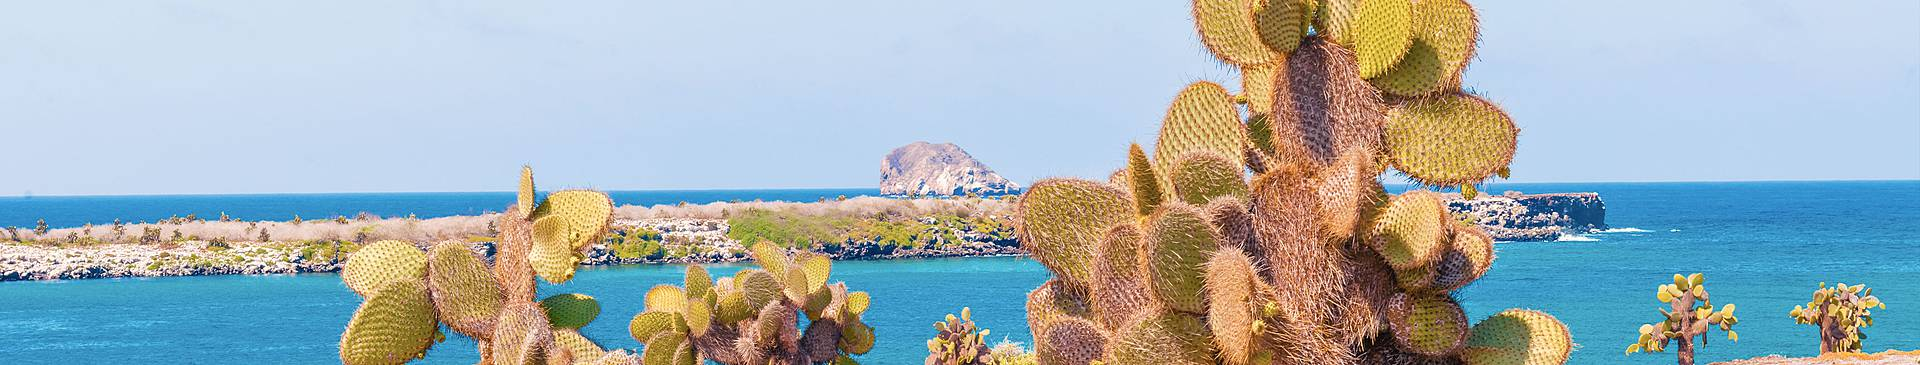 Summer in the Galapagos Islands